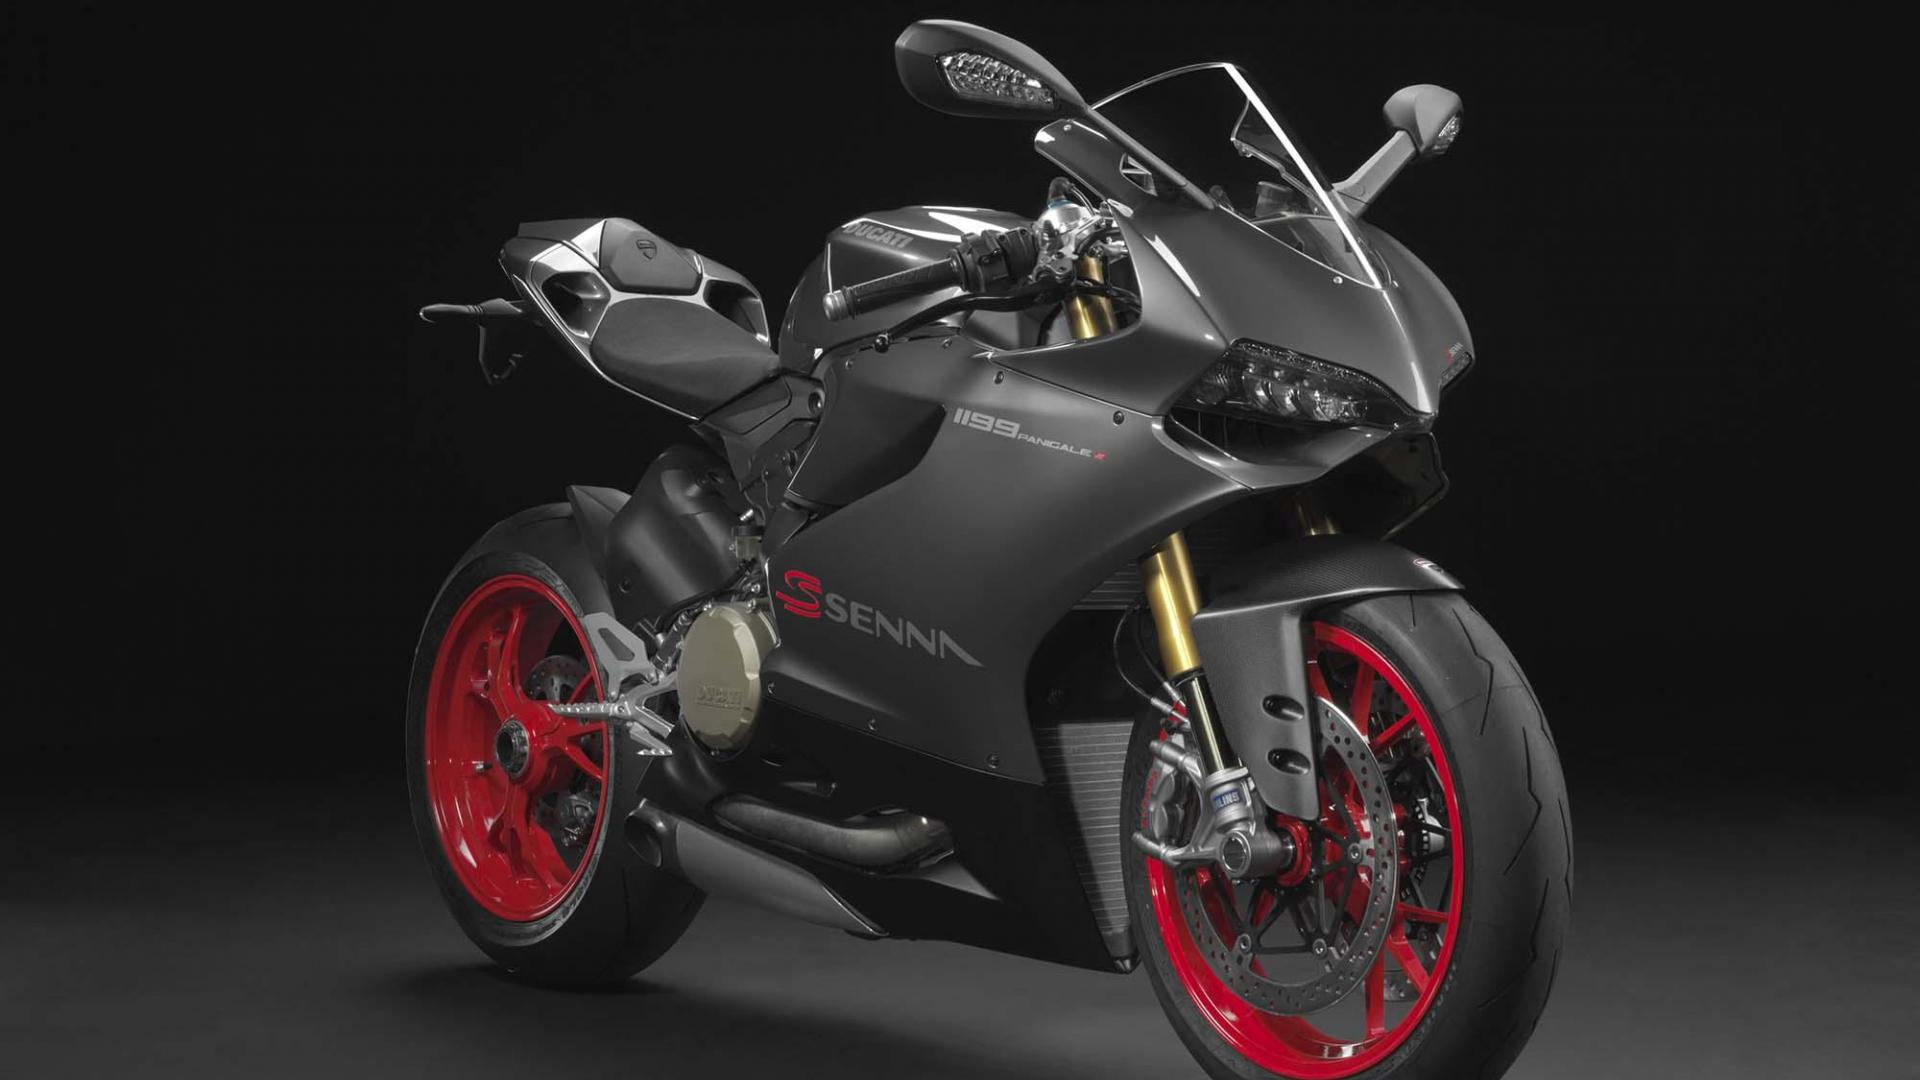 ducati-1299-wallpapers-64968-2937901.jpg